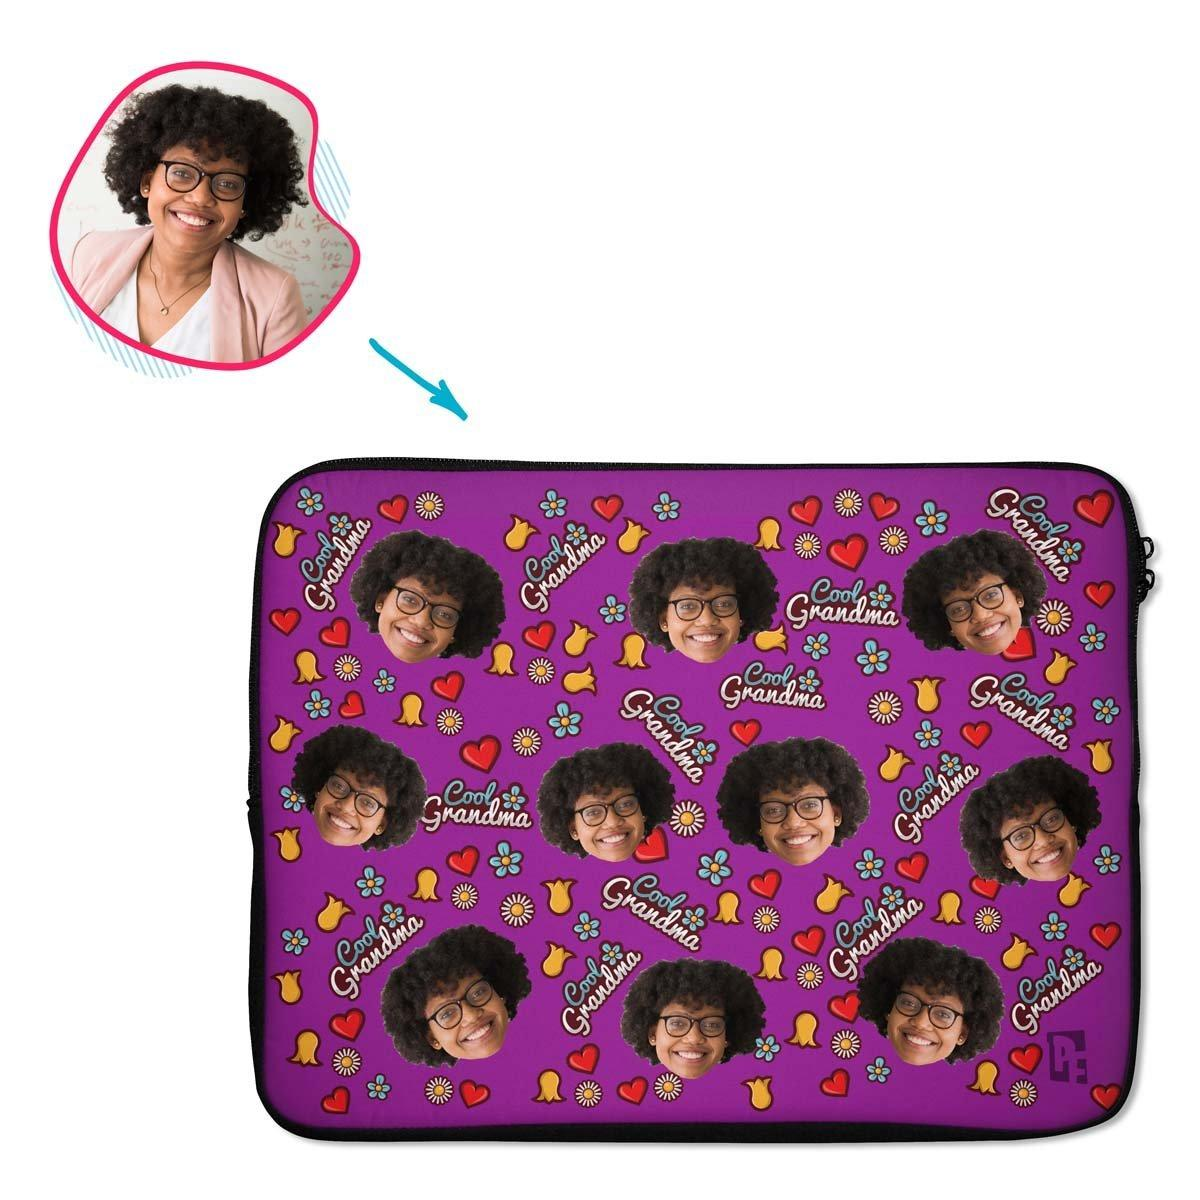 purple Cool Grandmother laptop sleeve personalized with photo of face printed on them